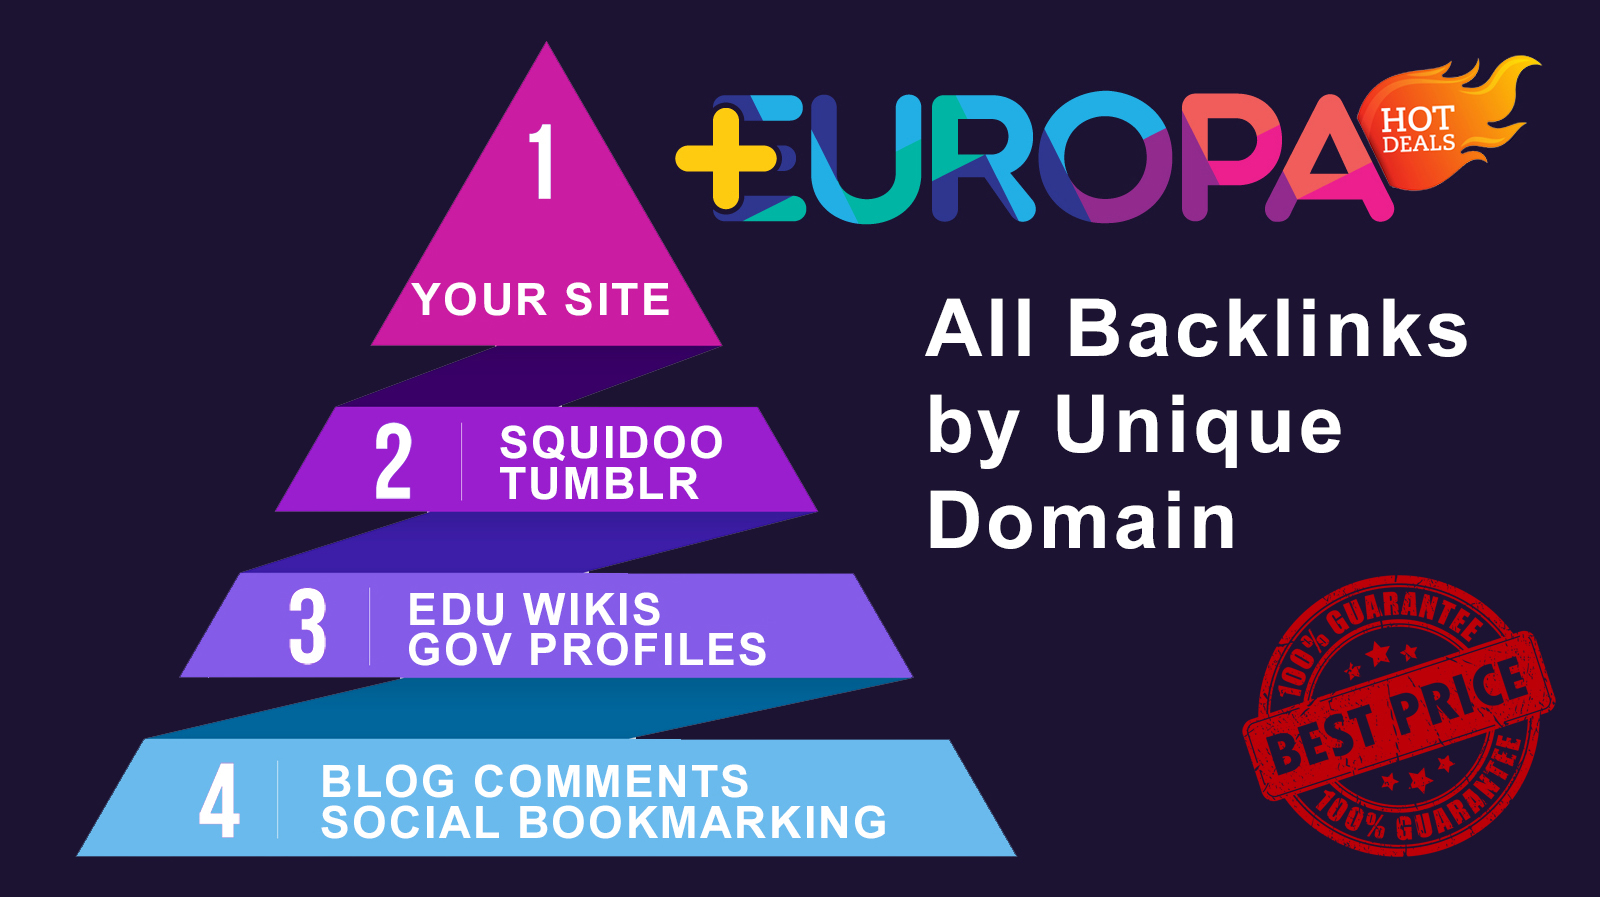 Rank on Google 1st page by exclusive Link Pyramid. All Backlinks by Unique